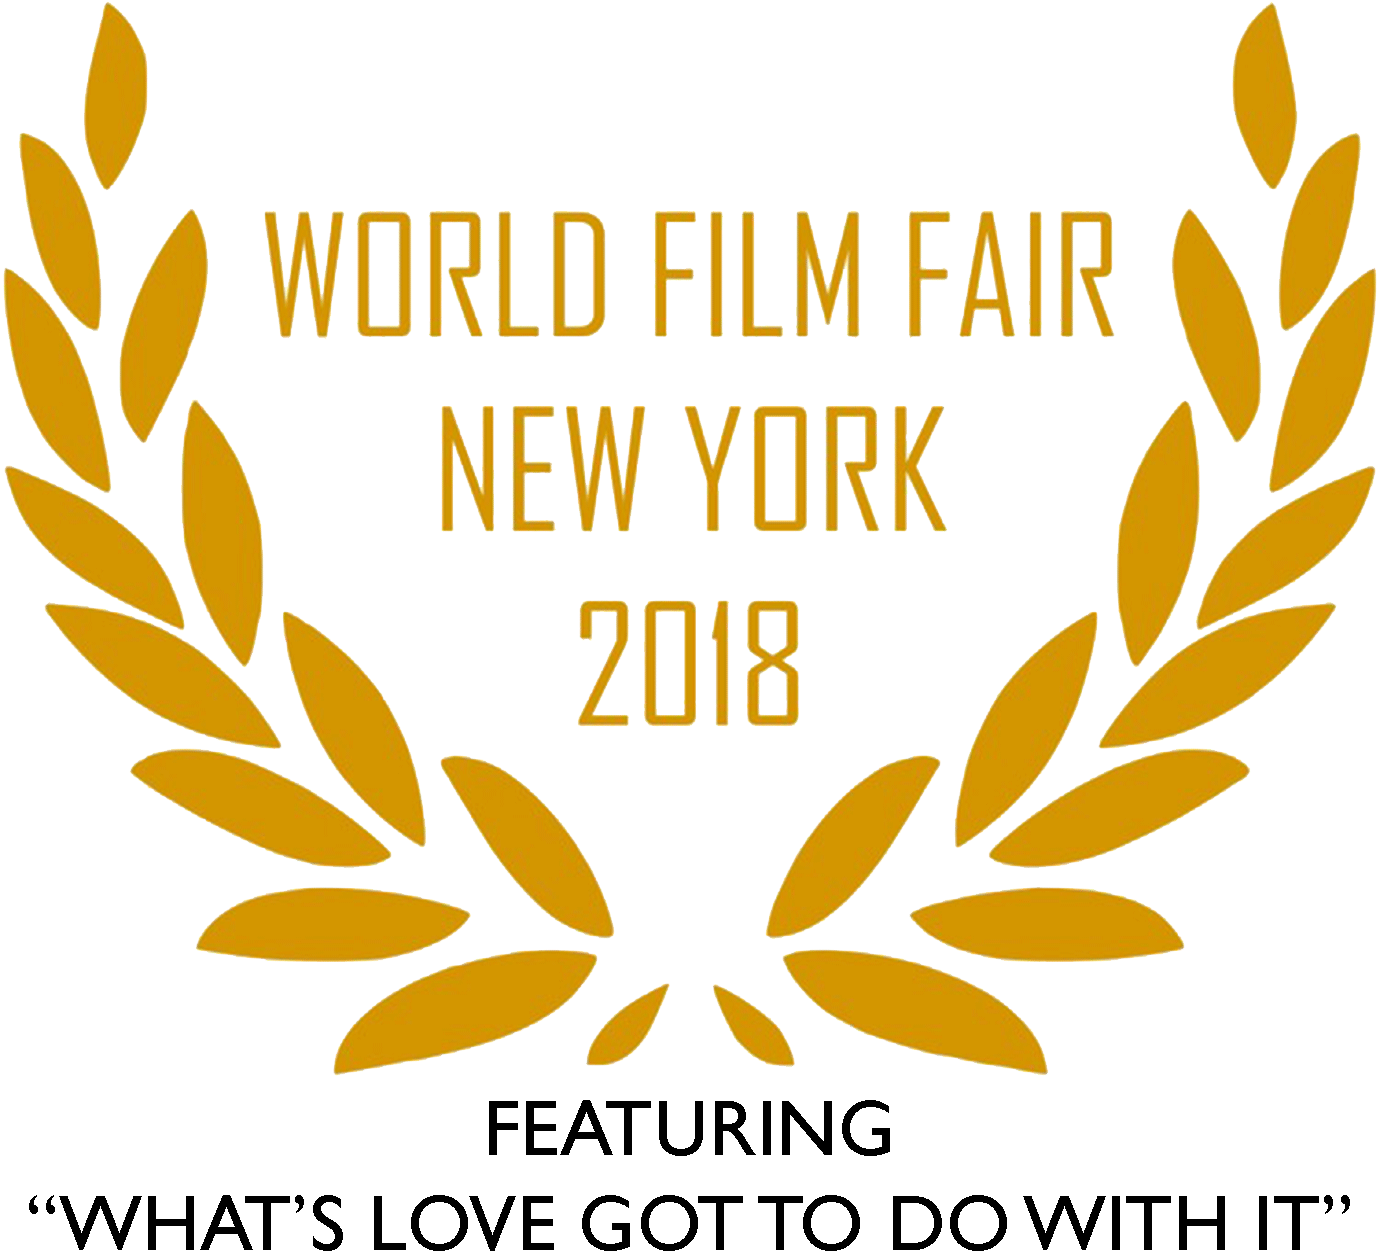 Sofia Wellman - Whats Love Got To Do With It - World Film Fair - 2018